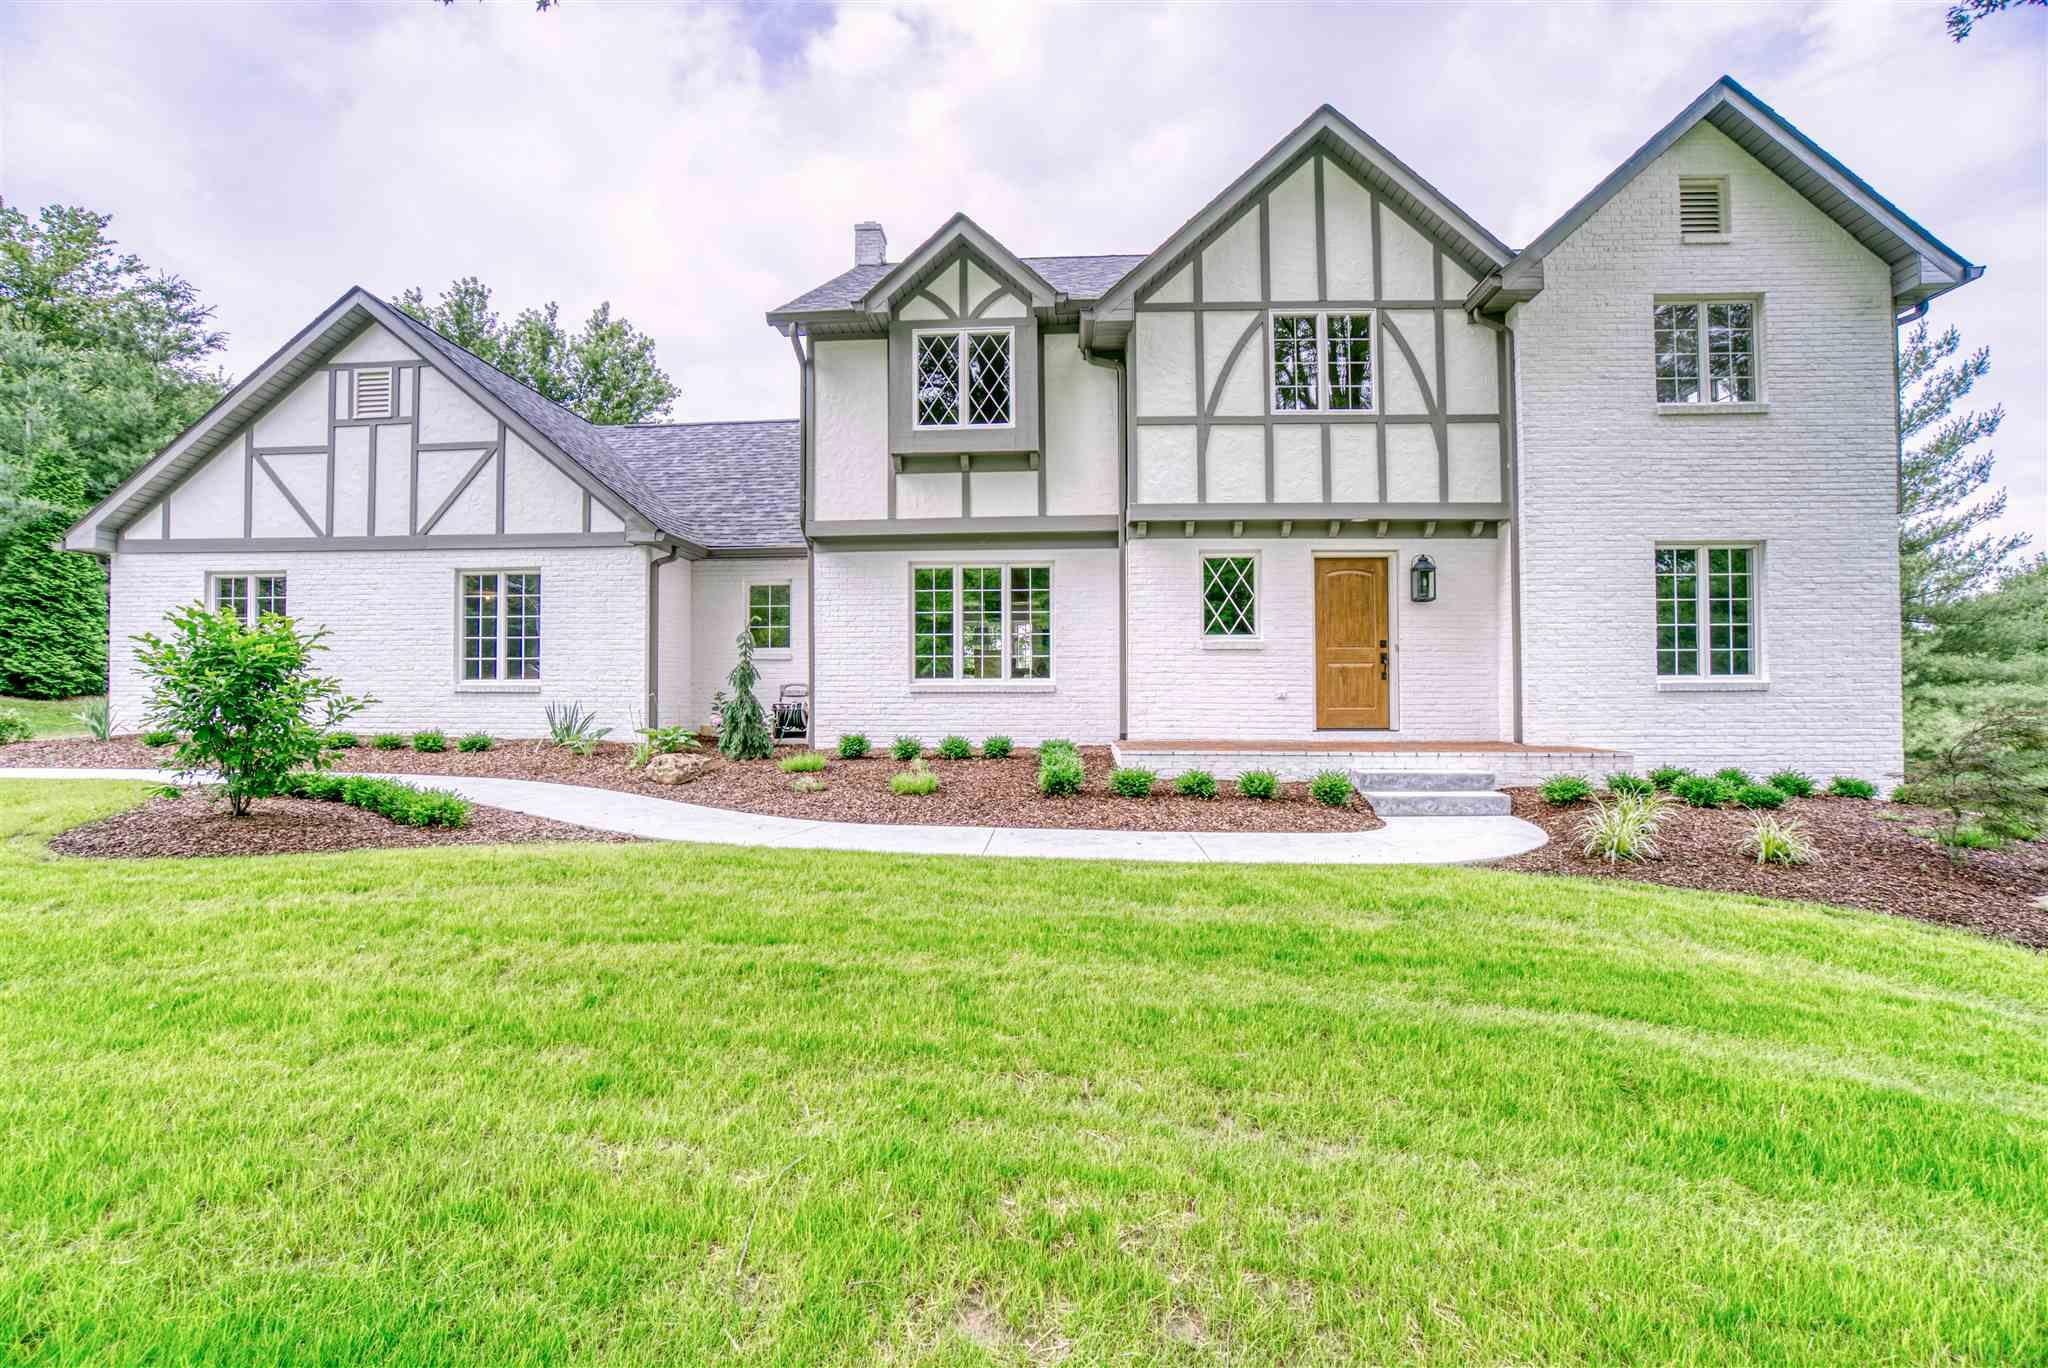 Welcome to the elegant St Charles Tudor! This home is a masterfully redesigned and fully renovated 4-bedroom, 3.5-bathroom Tudor Home that sits on 1.16 acres.  It is conveniently located to The Parklands, The Jasper High School, and the St. Charles walking/biking path.  Every detail in this home was carefully selected and quality crafted. The main floor plan encompasses a beautiful kitchen with custom built cabinets, stunning soapstone countertops and new Kitchen Aid appliances. The kitchen flows into a functionally designed mudroom, laundry room, a half bath, a dining room and living room. The living room is graced with a beautifully trimmed wood burning fireplace, large windows, and opens up to a custom-built wood deck. Finishing the main floor is a spacious study and a custom staircase which leads you to the upstairs. The upstairs contains 4 generously sized bedrooms and 2 full bathrooms. The master suite has a large walk-in closet, additional his and hers closet spaces, and a beautiful master bath with a custom tiled walk in shower.  Three additional bedrooms, a full bathroom and another study with built-in cabinetry finish off the upstairs. The basement is a perfect open space for entertaining with a bar, built-in entertainment area, and a full bath and opens to walkout patio. There are too many features to list.  Please come check out your new home.  Created and Designed by A + D Renovation and Design.